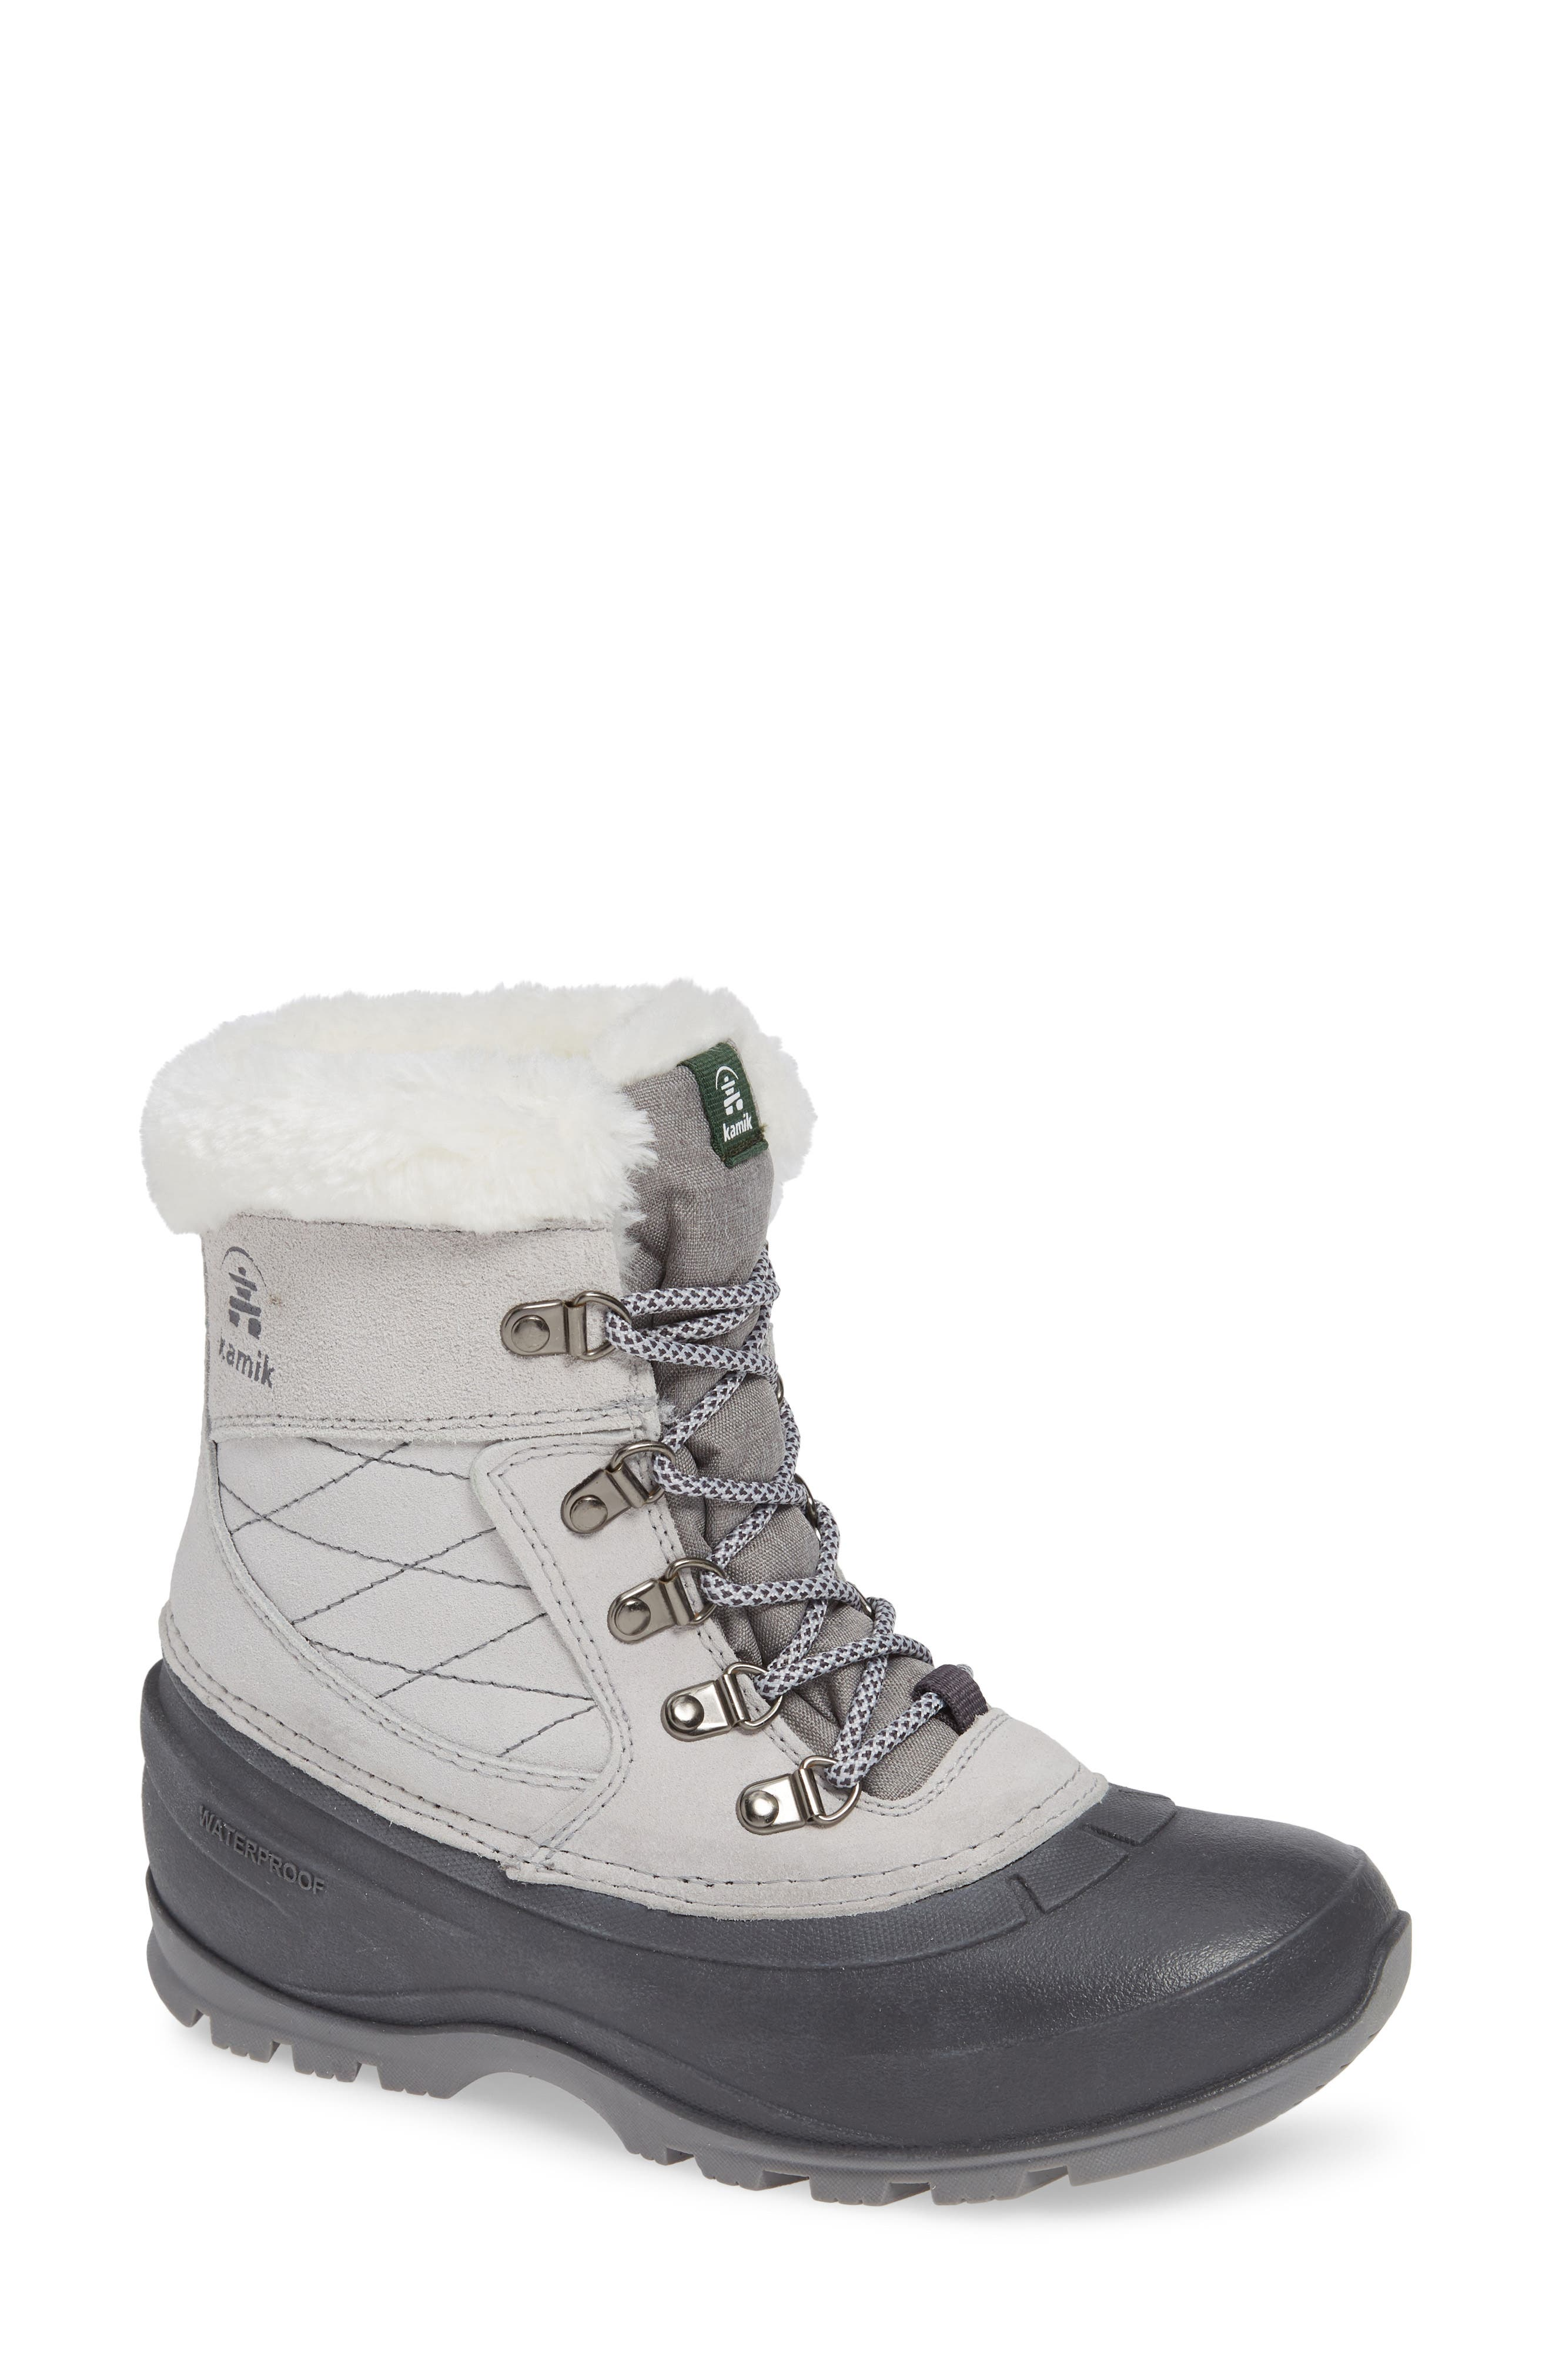 KAMIK,                             Snovalley1 Waterproof Thinsulate<sup>®</sup> Insulated Snow Boot,                             Main thumbnail 1, color,                             LIGHT GREY SUEDE